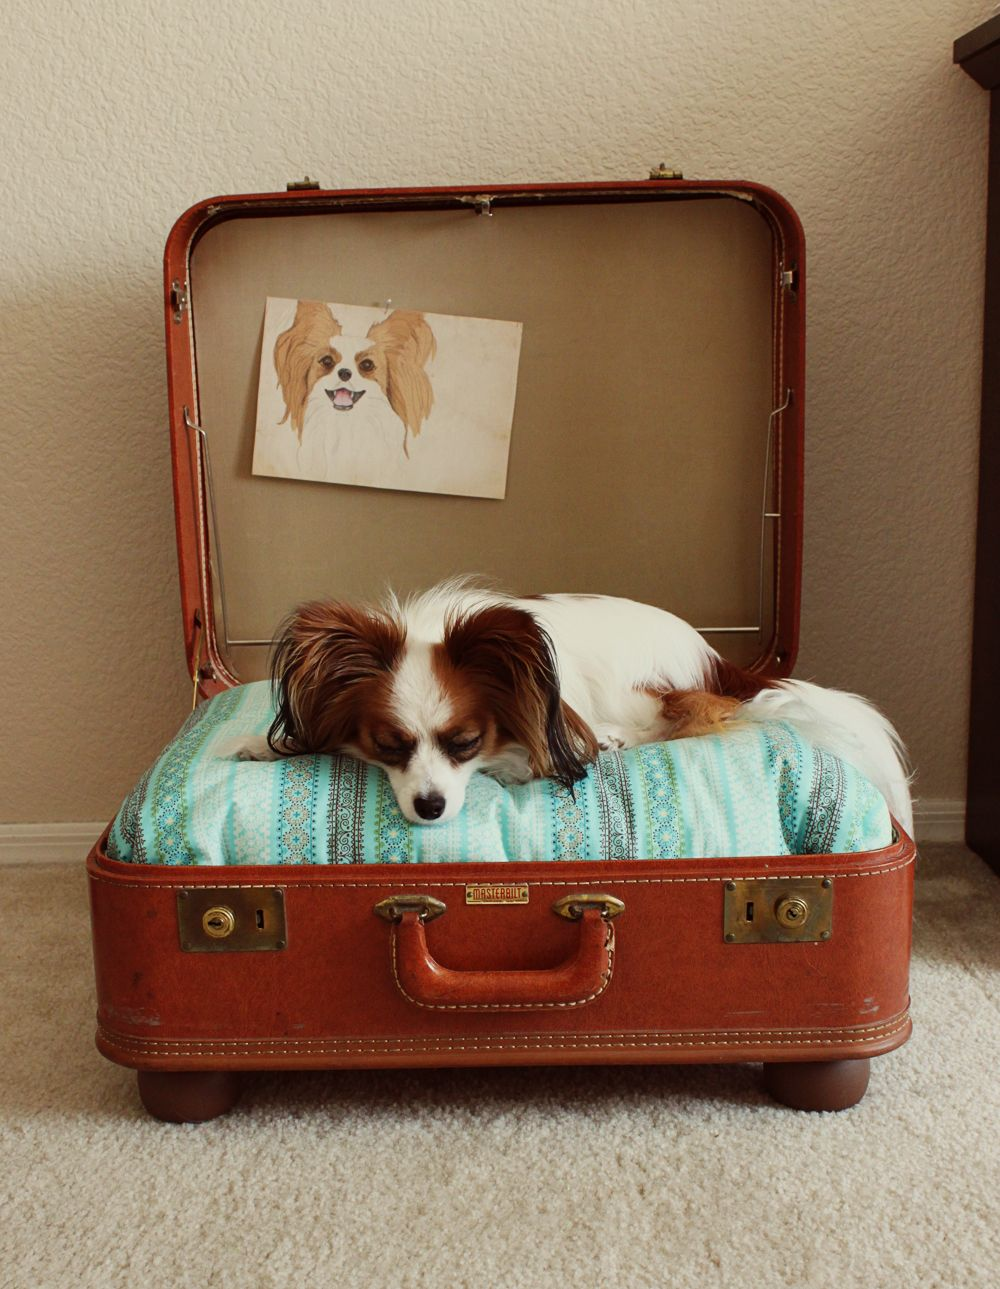 The pet in the suitcase